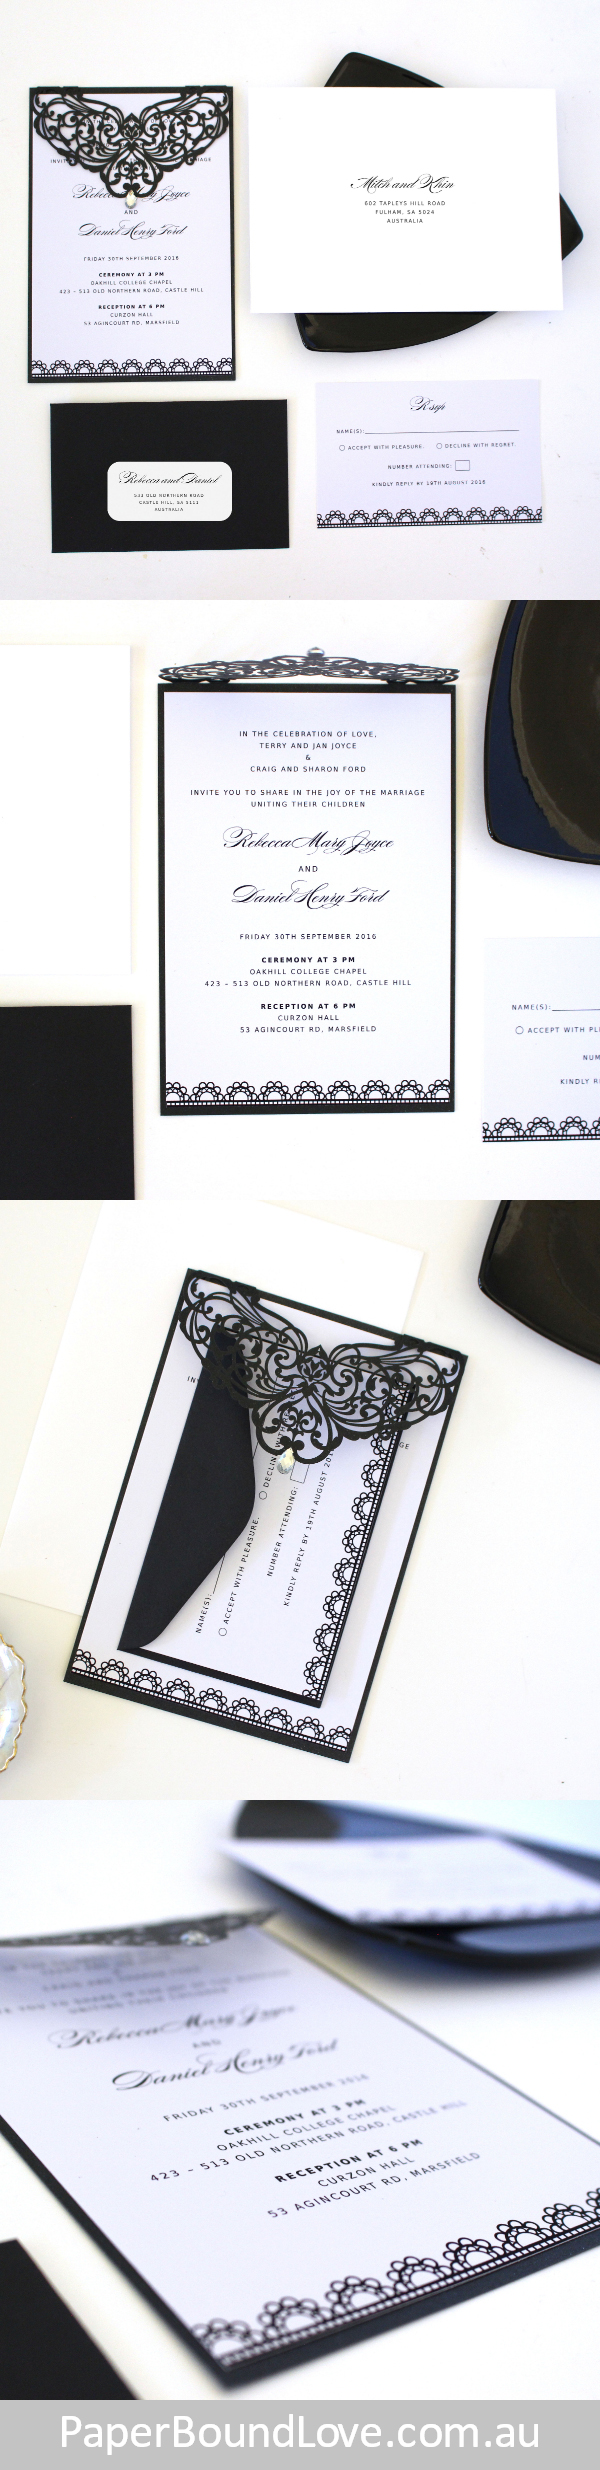 Ornate | Back & White wedding invitation by Paper Bound Love ...